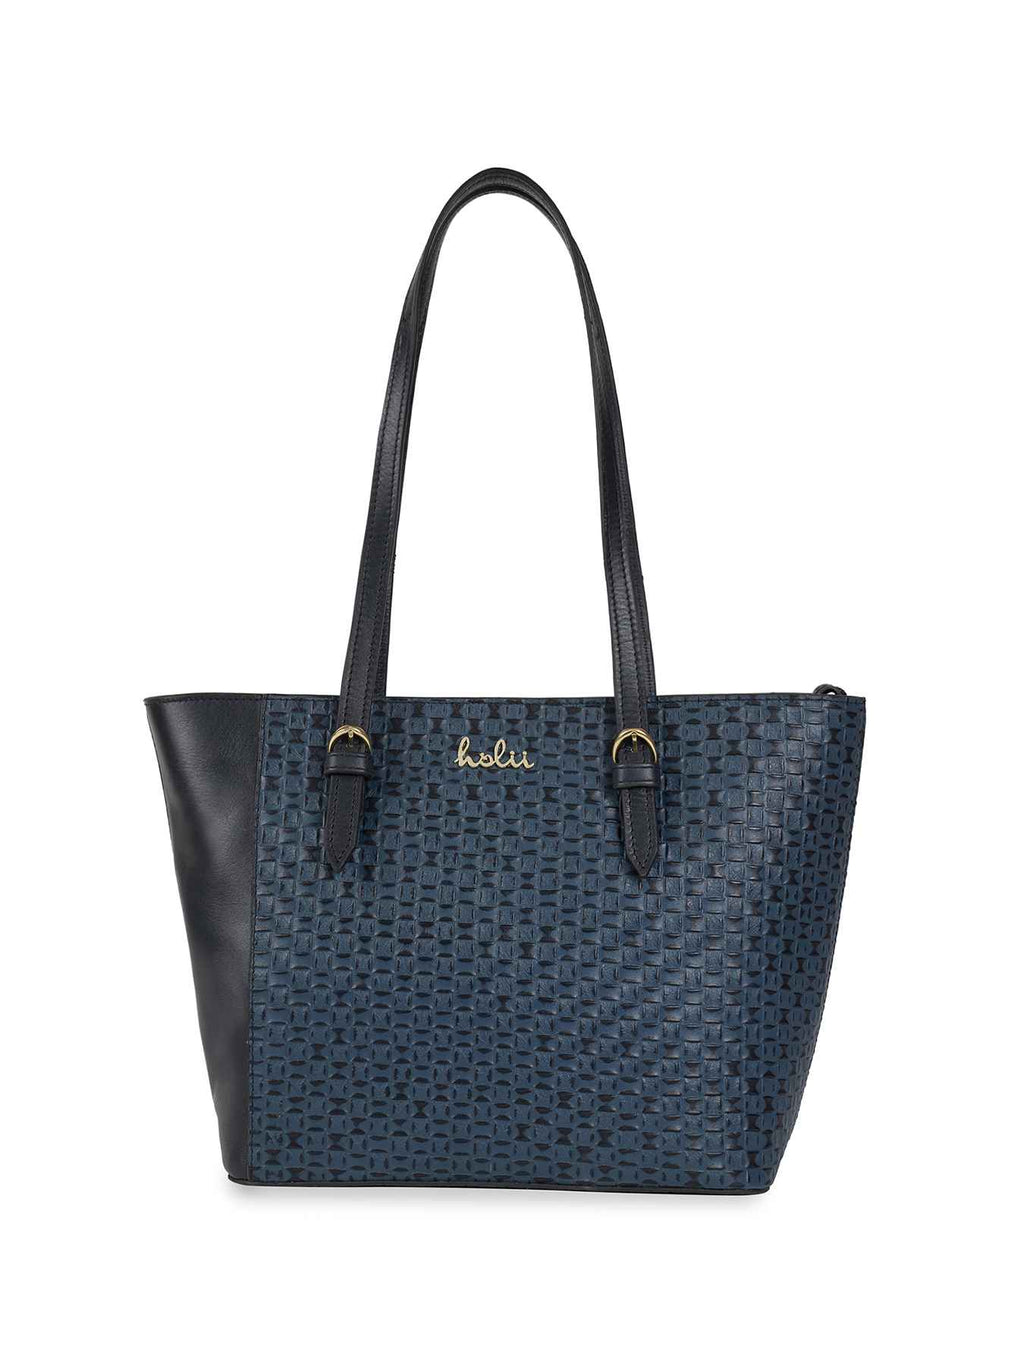 Lorrie Blue Leather Tote